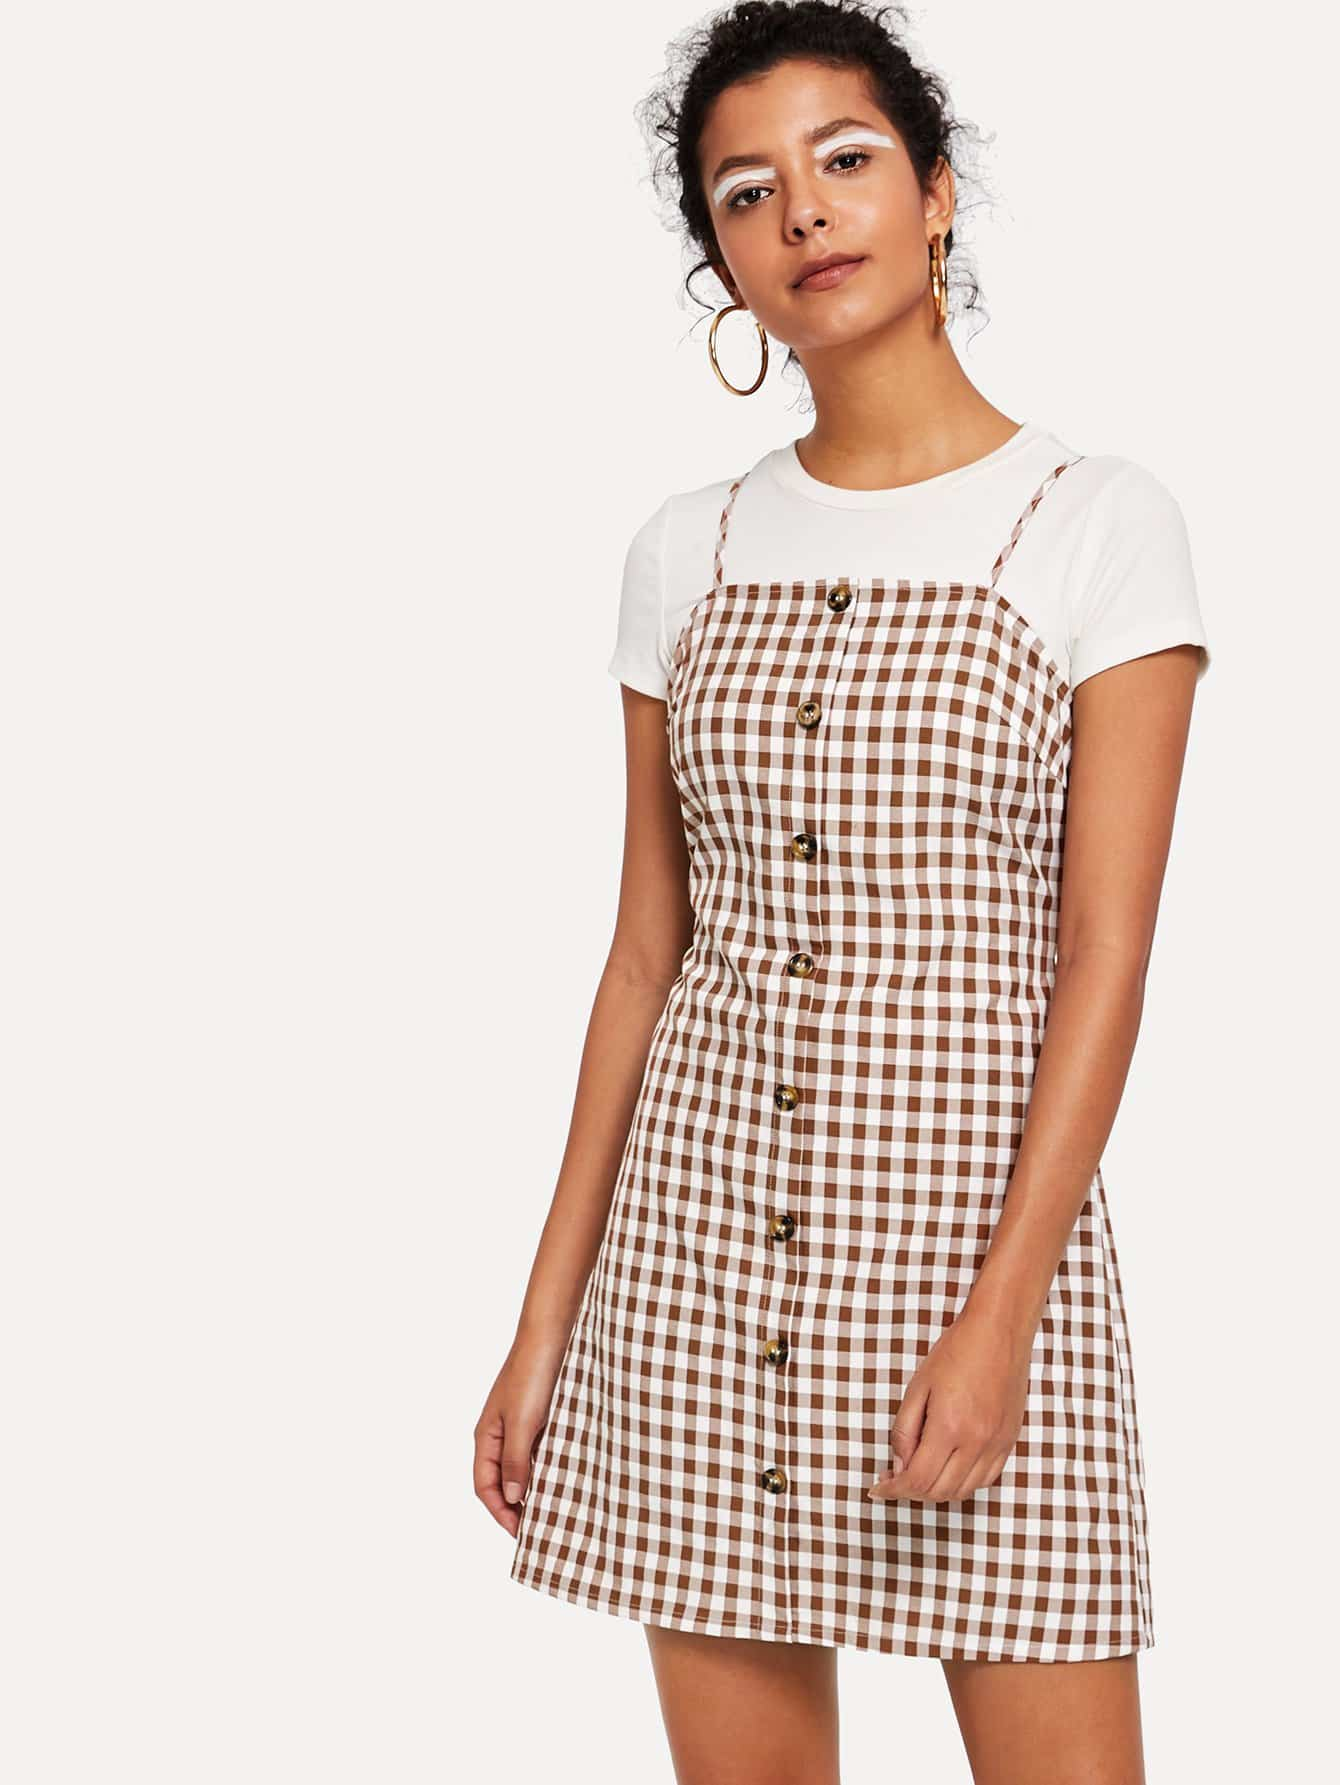 Knot Cutout Back Buttoned Gingham Cami Dress knot front cutout midriff halterneck gingham dress